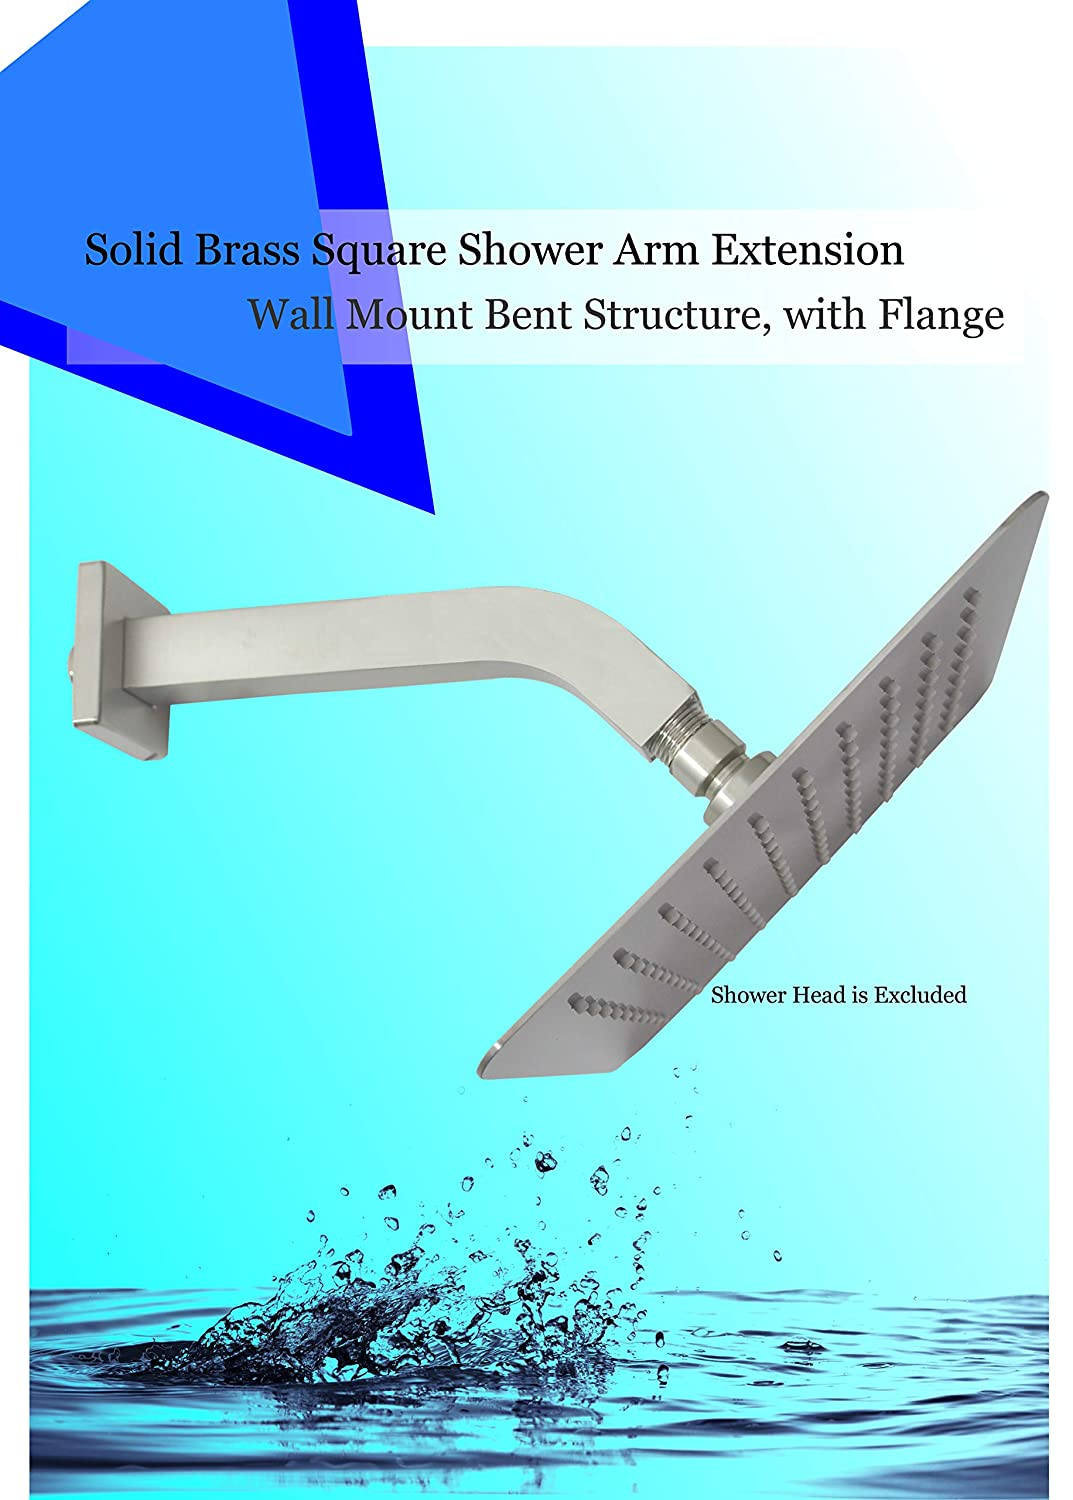 12 Inch Solid Brass 8 inch Compatible with Shower Head Max American Exclusive Quality Square 1//2-14 NPT Shower Extension Arm with Flange Aquaiaw Shower Arm Wall Mount Polished Chrome Bent